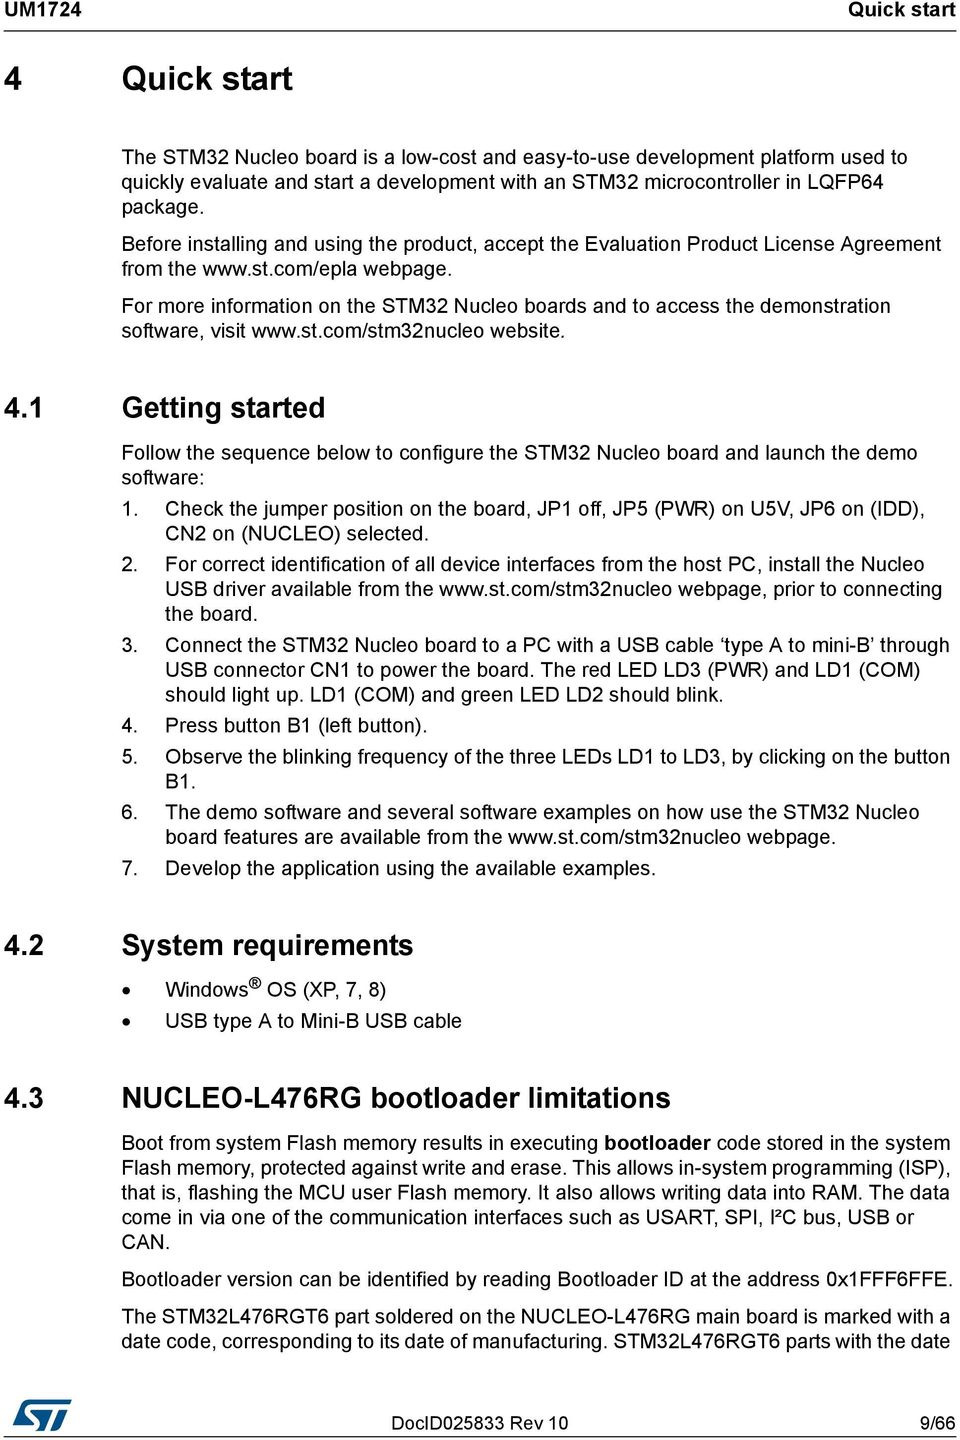 UM1724 User manual  STM32 Nucleo-64 boards  Introduction - PDF